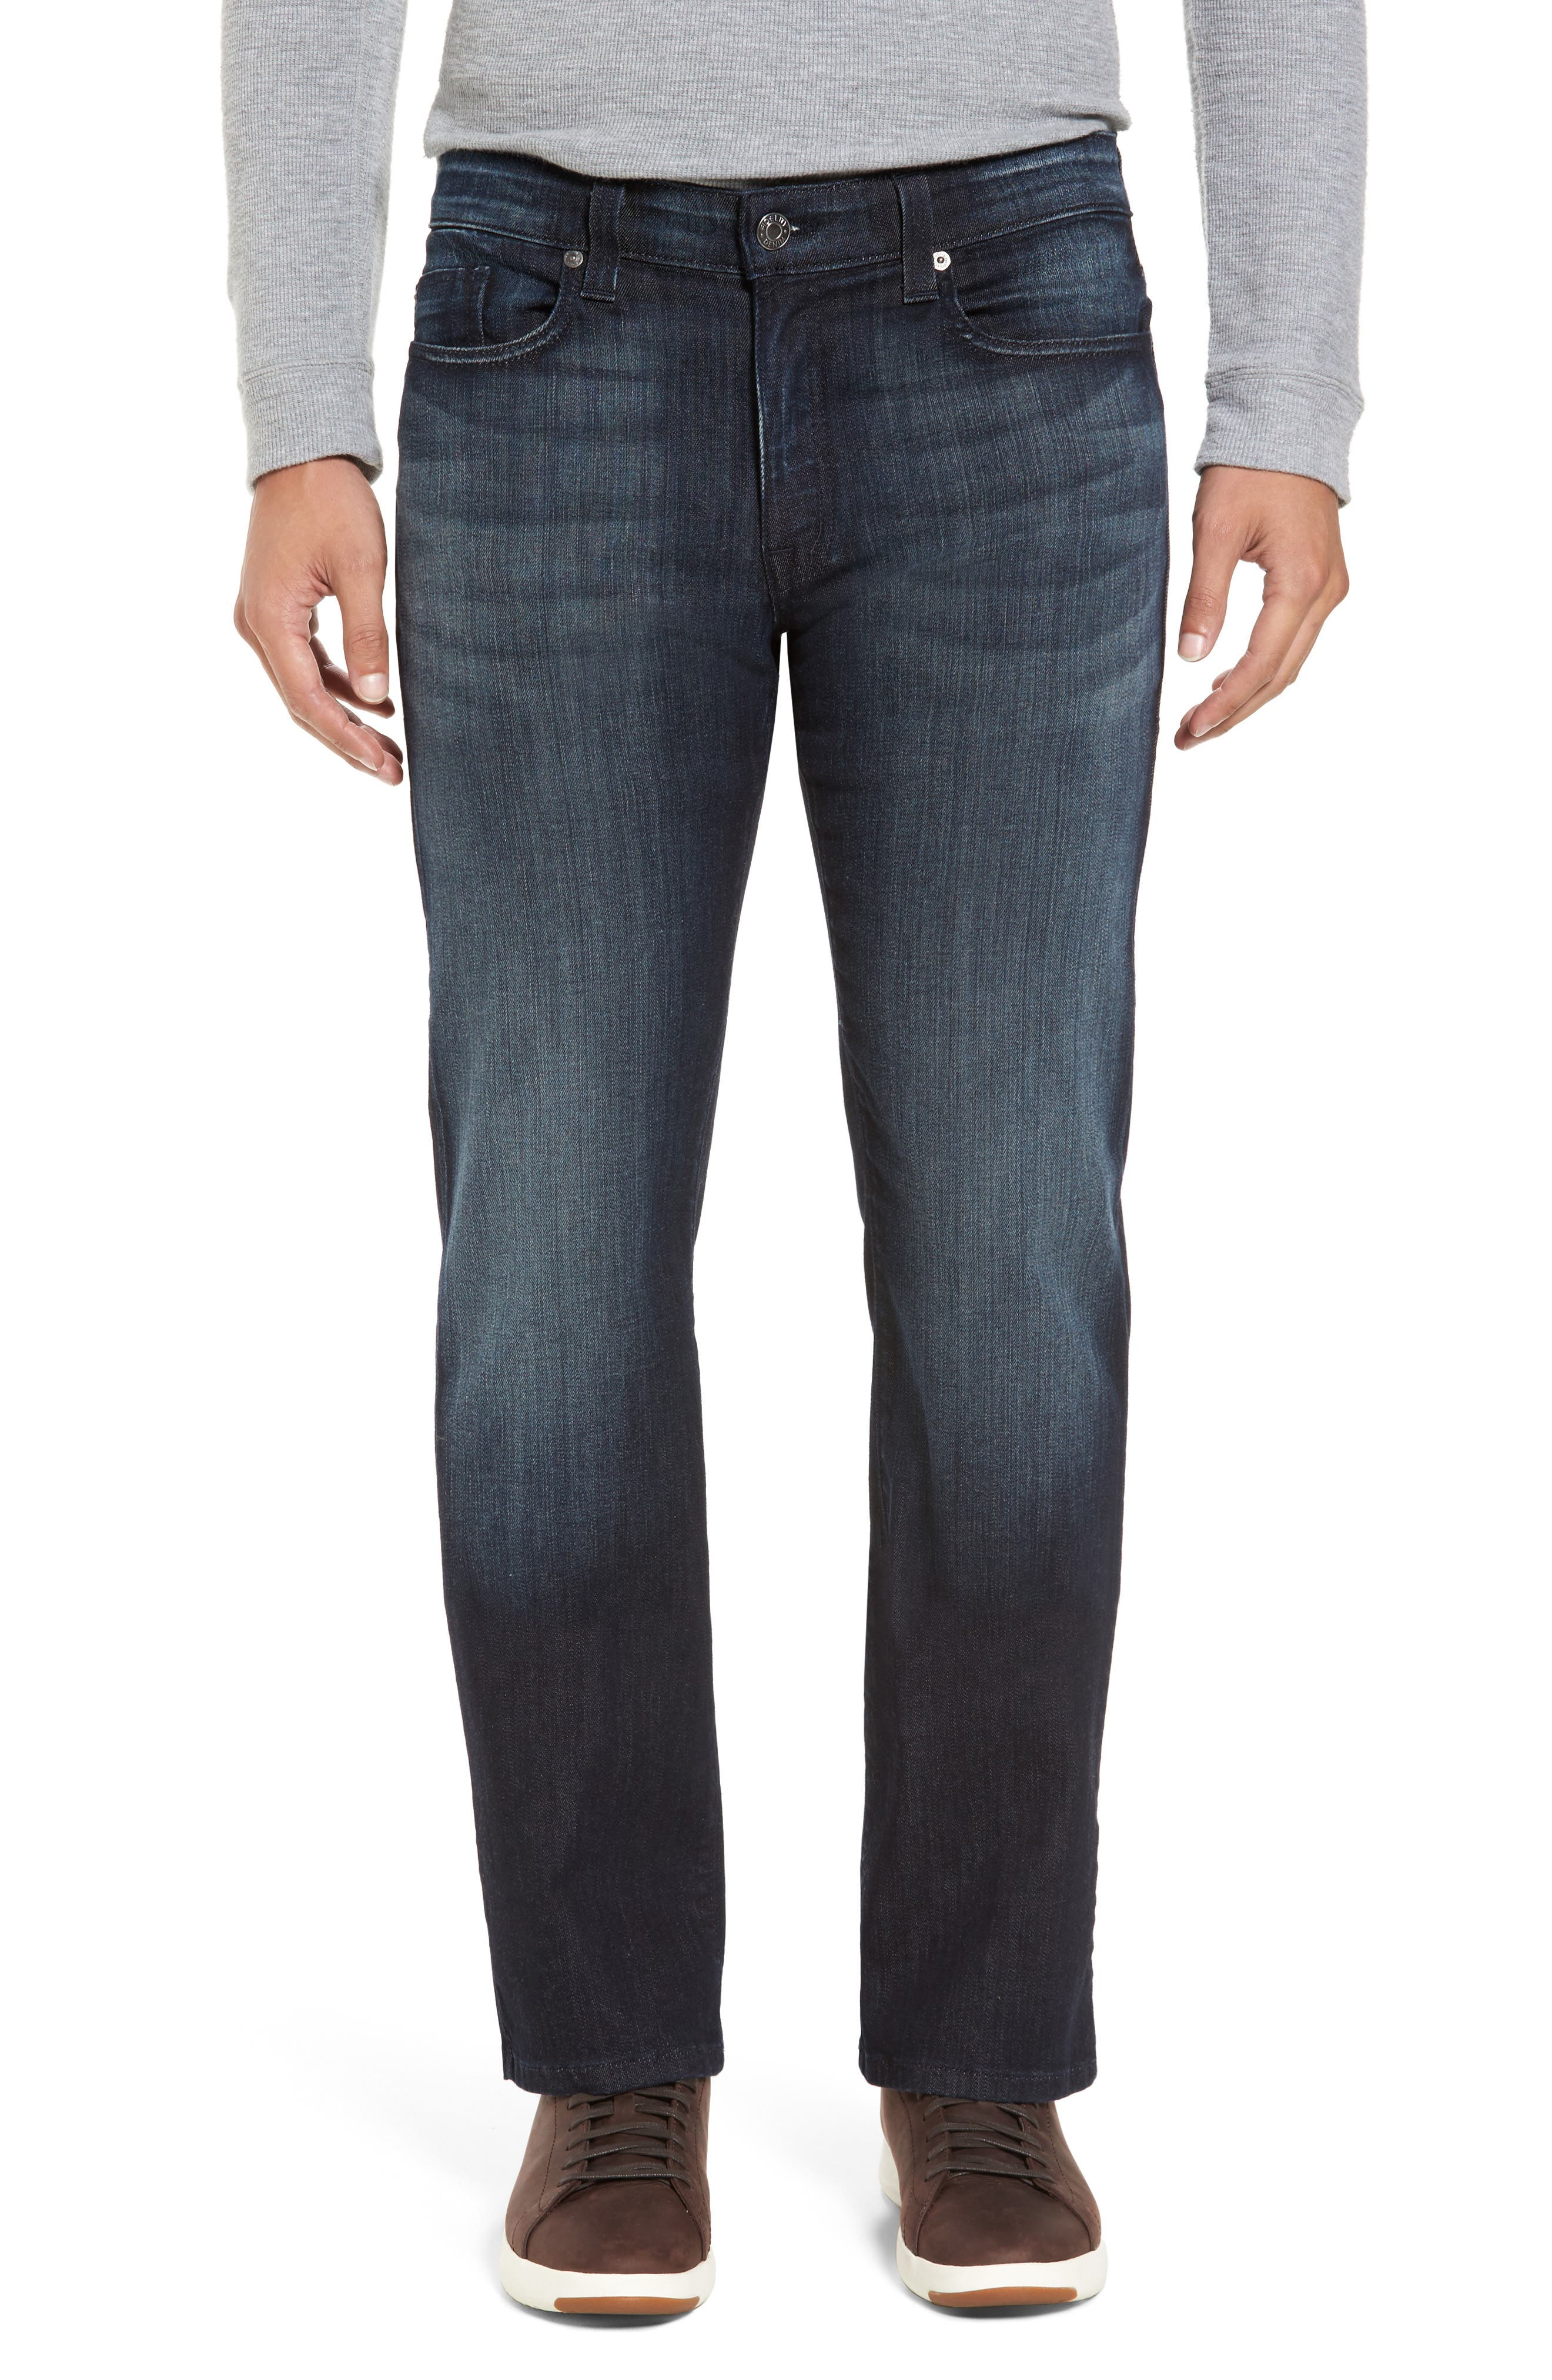 Alternate Image 1 Selected - Fidelity Denim 5011 Relaxed Fit Jeans (Brooklyn Blue)